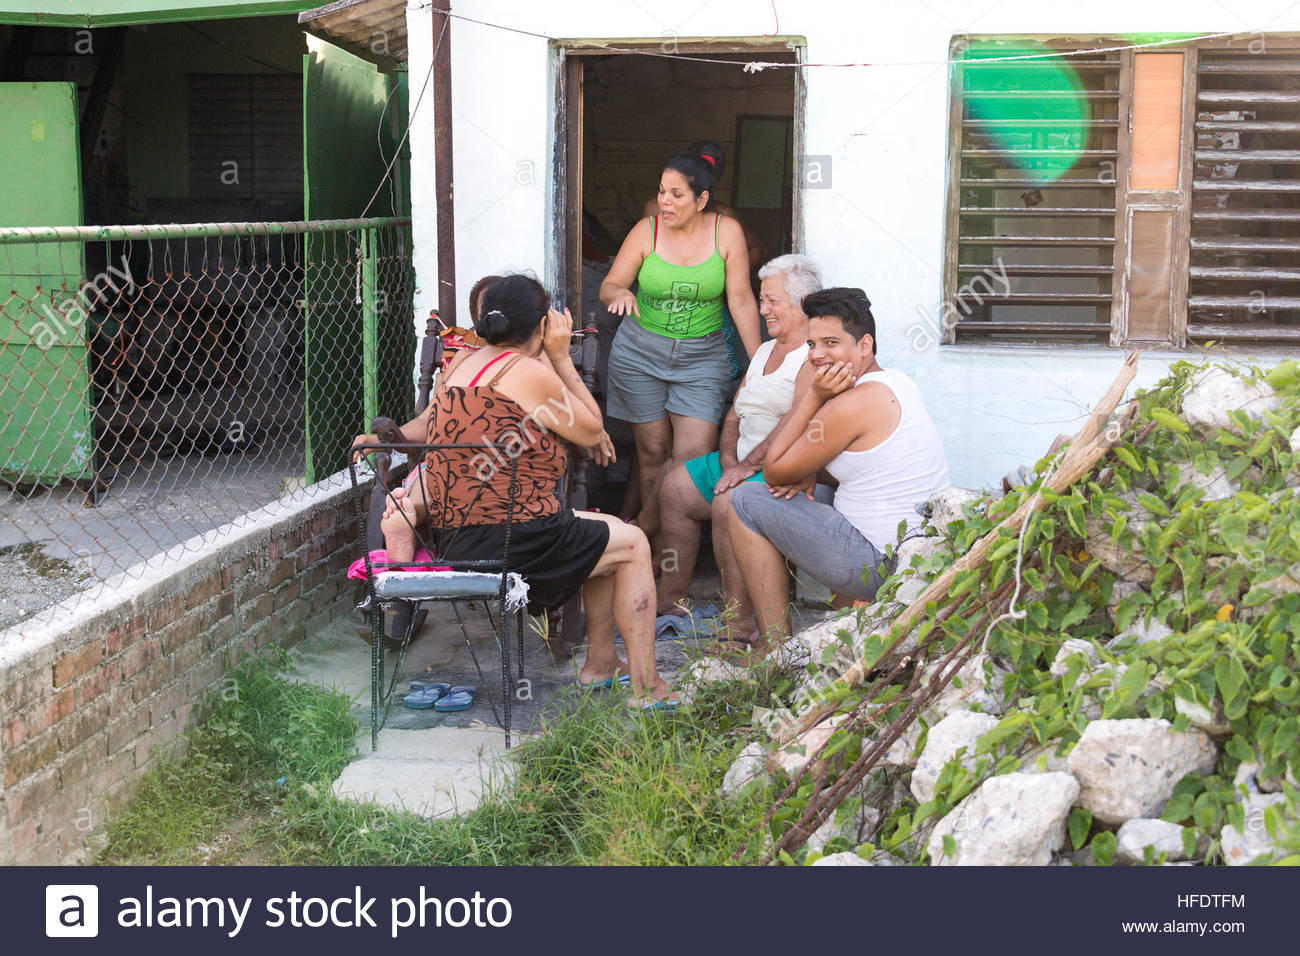 Cuban everyday lifestyle: A Cuban family or neighbors sitting together and talking outside their doorstep. - Stock Image